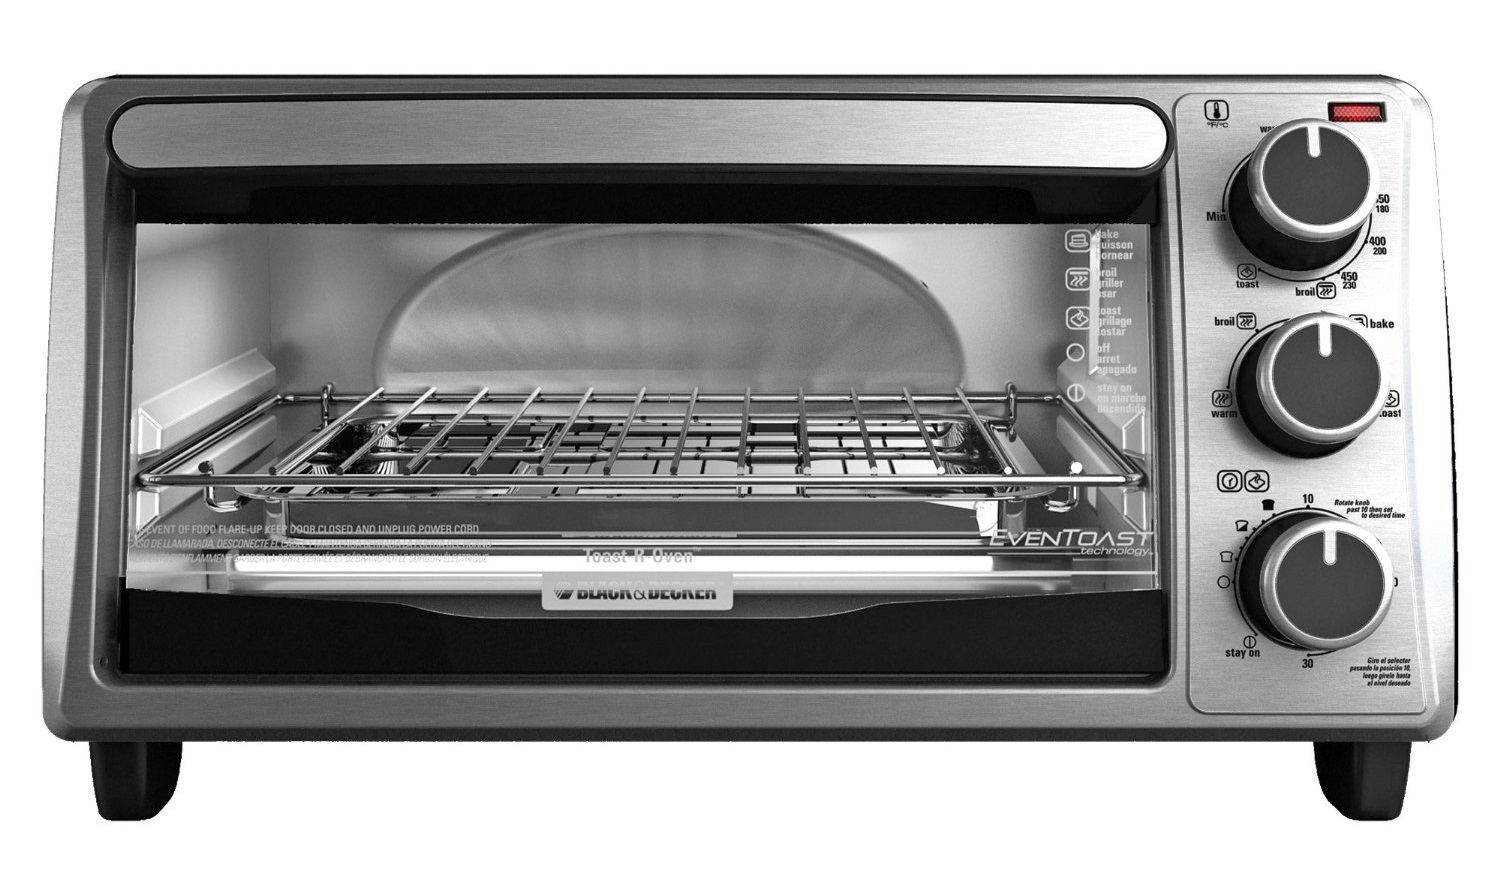 The Best Toaster Oven - Top 5 Models \u0026 Other Toaster Oven Reviews